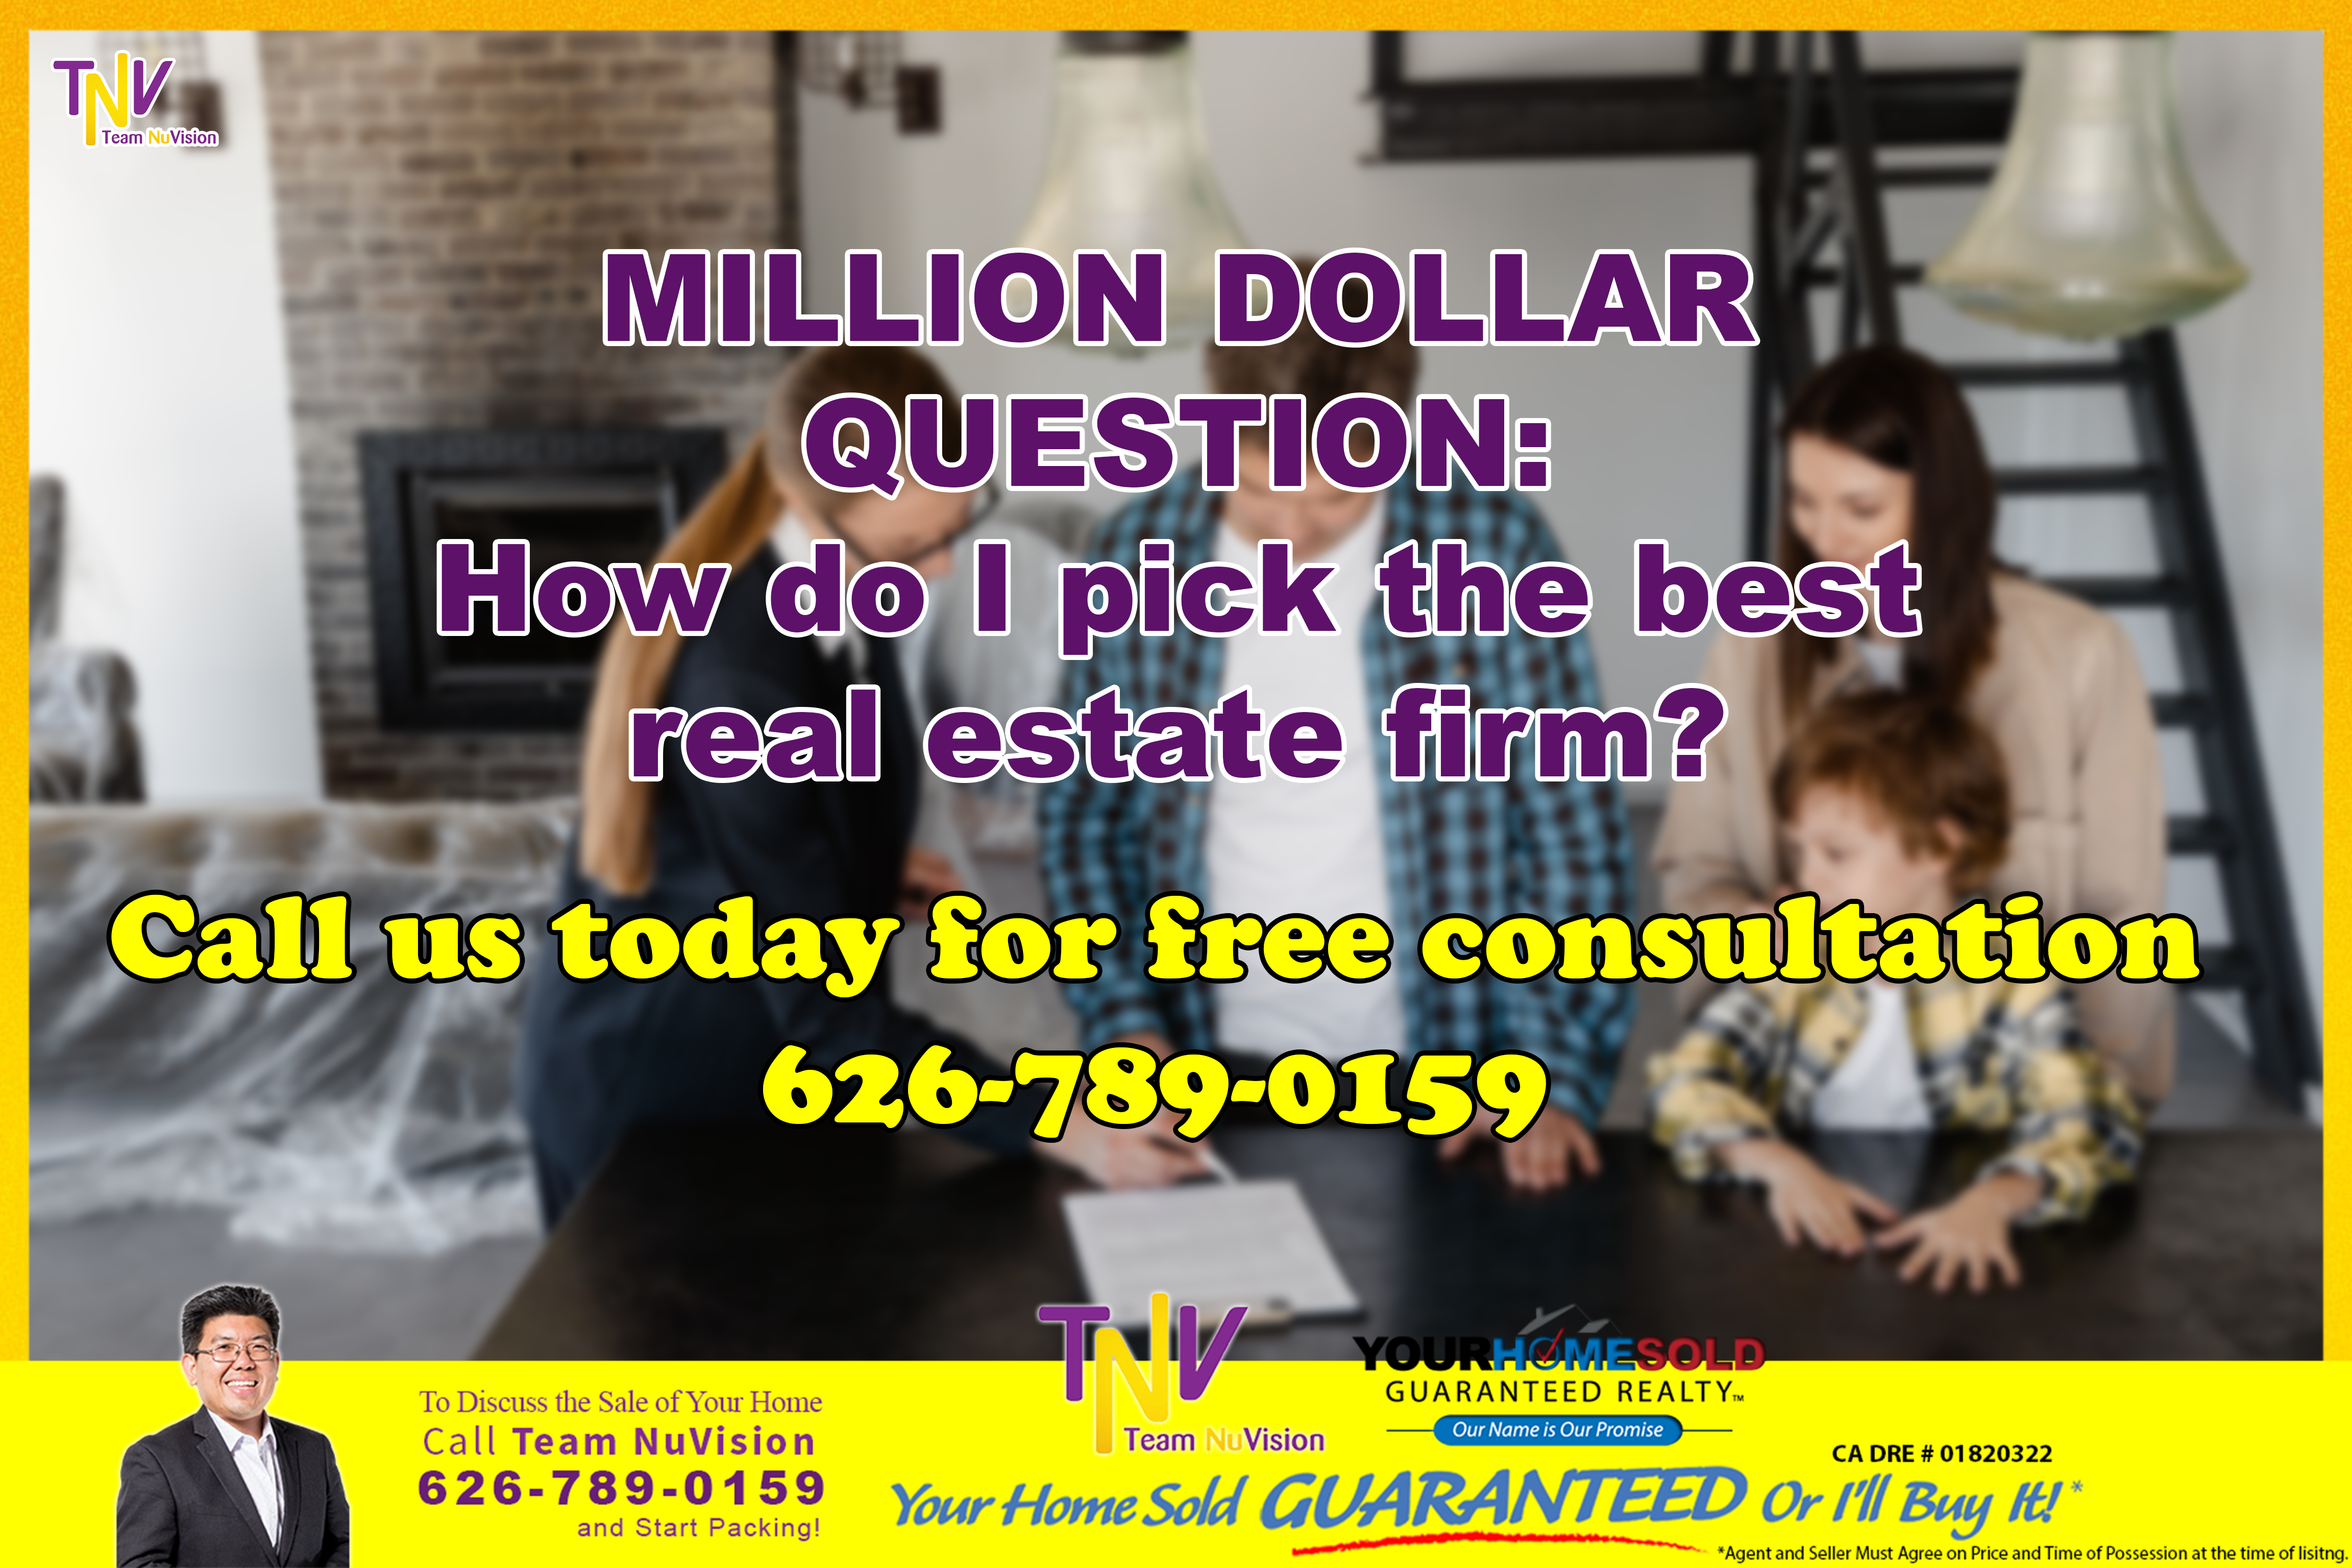 How do I pick the best real estate firm?